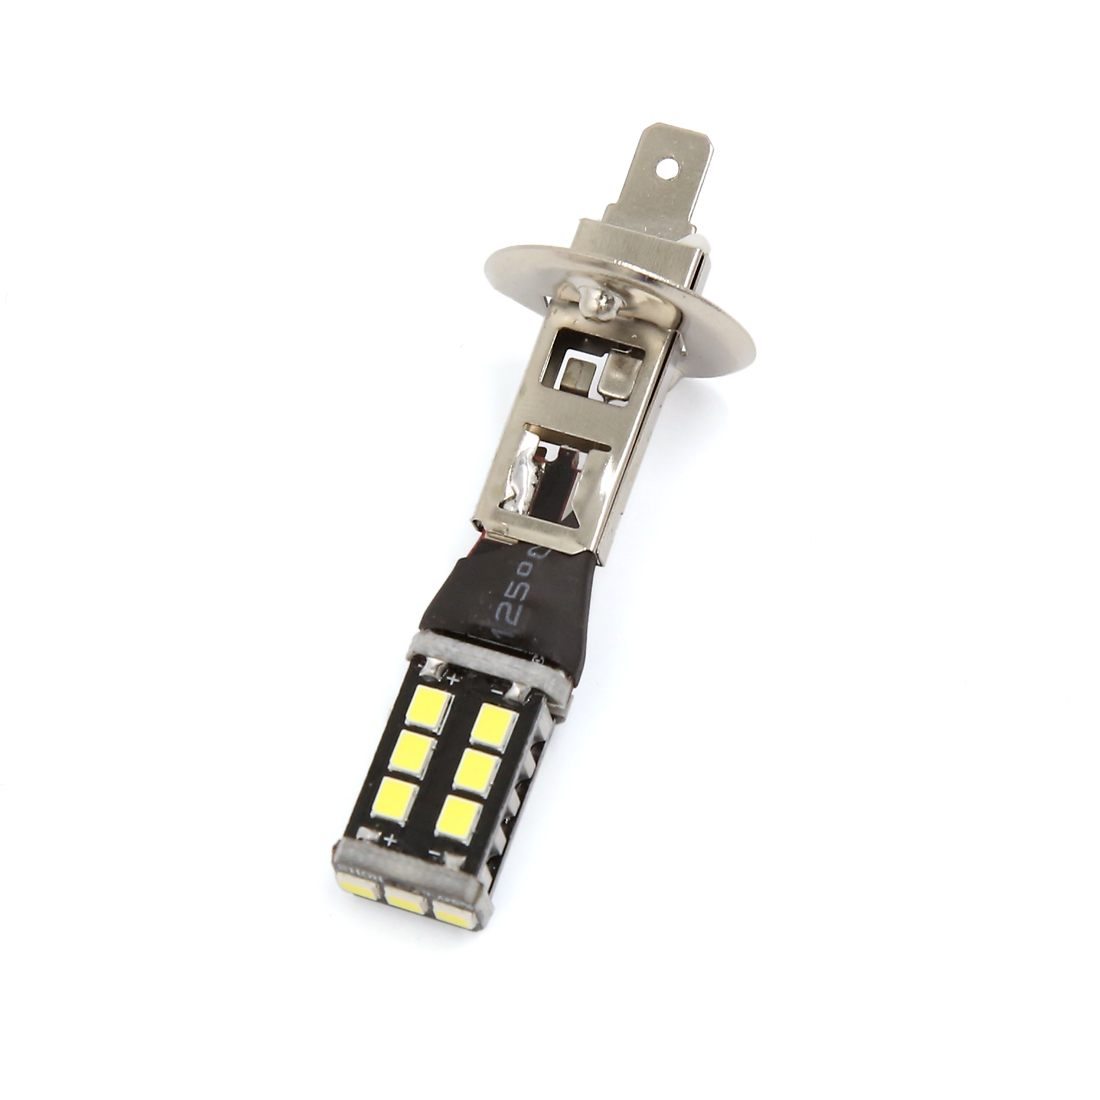 Car Vehicle 15W 2835 H1 800-1000LM 15 SMD White Daytime Running Light Lamp Bulb